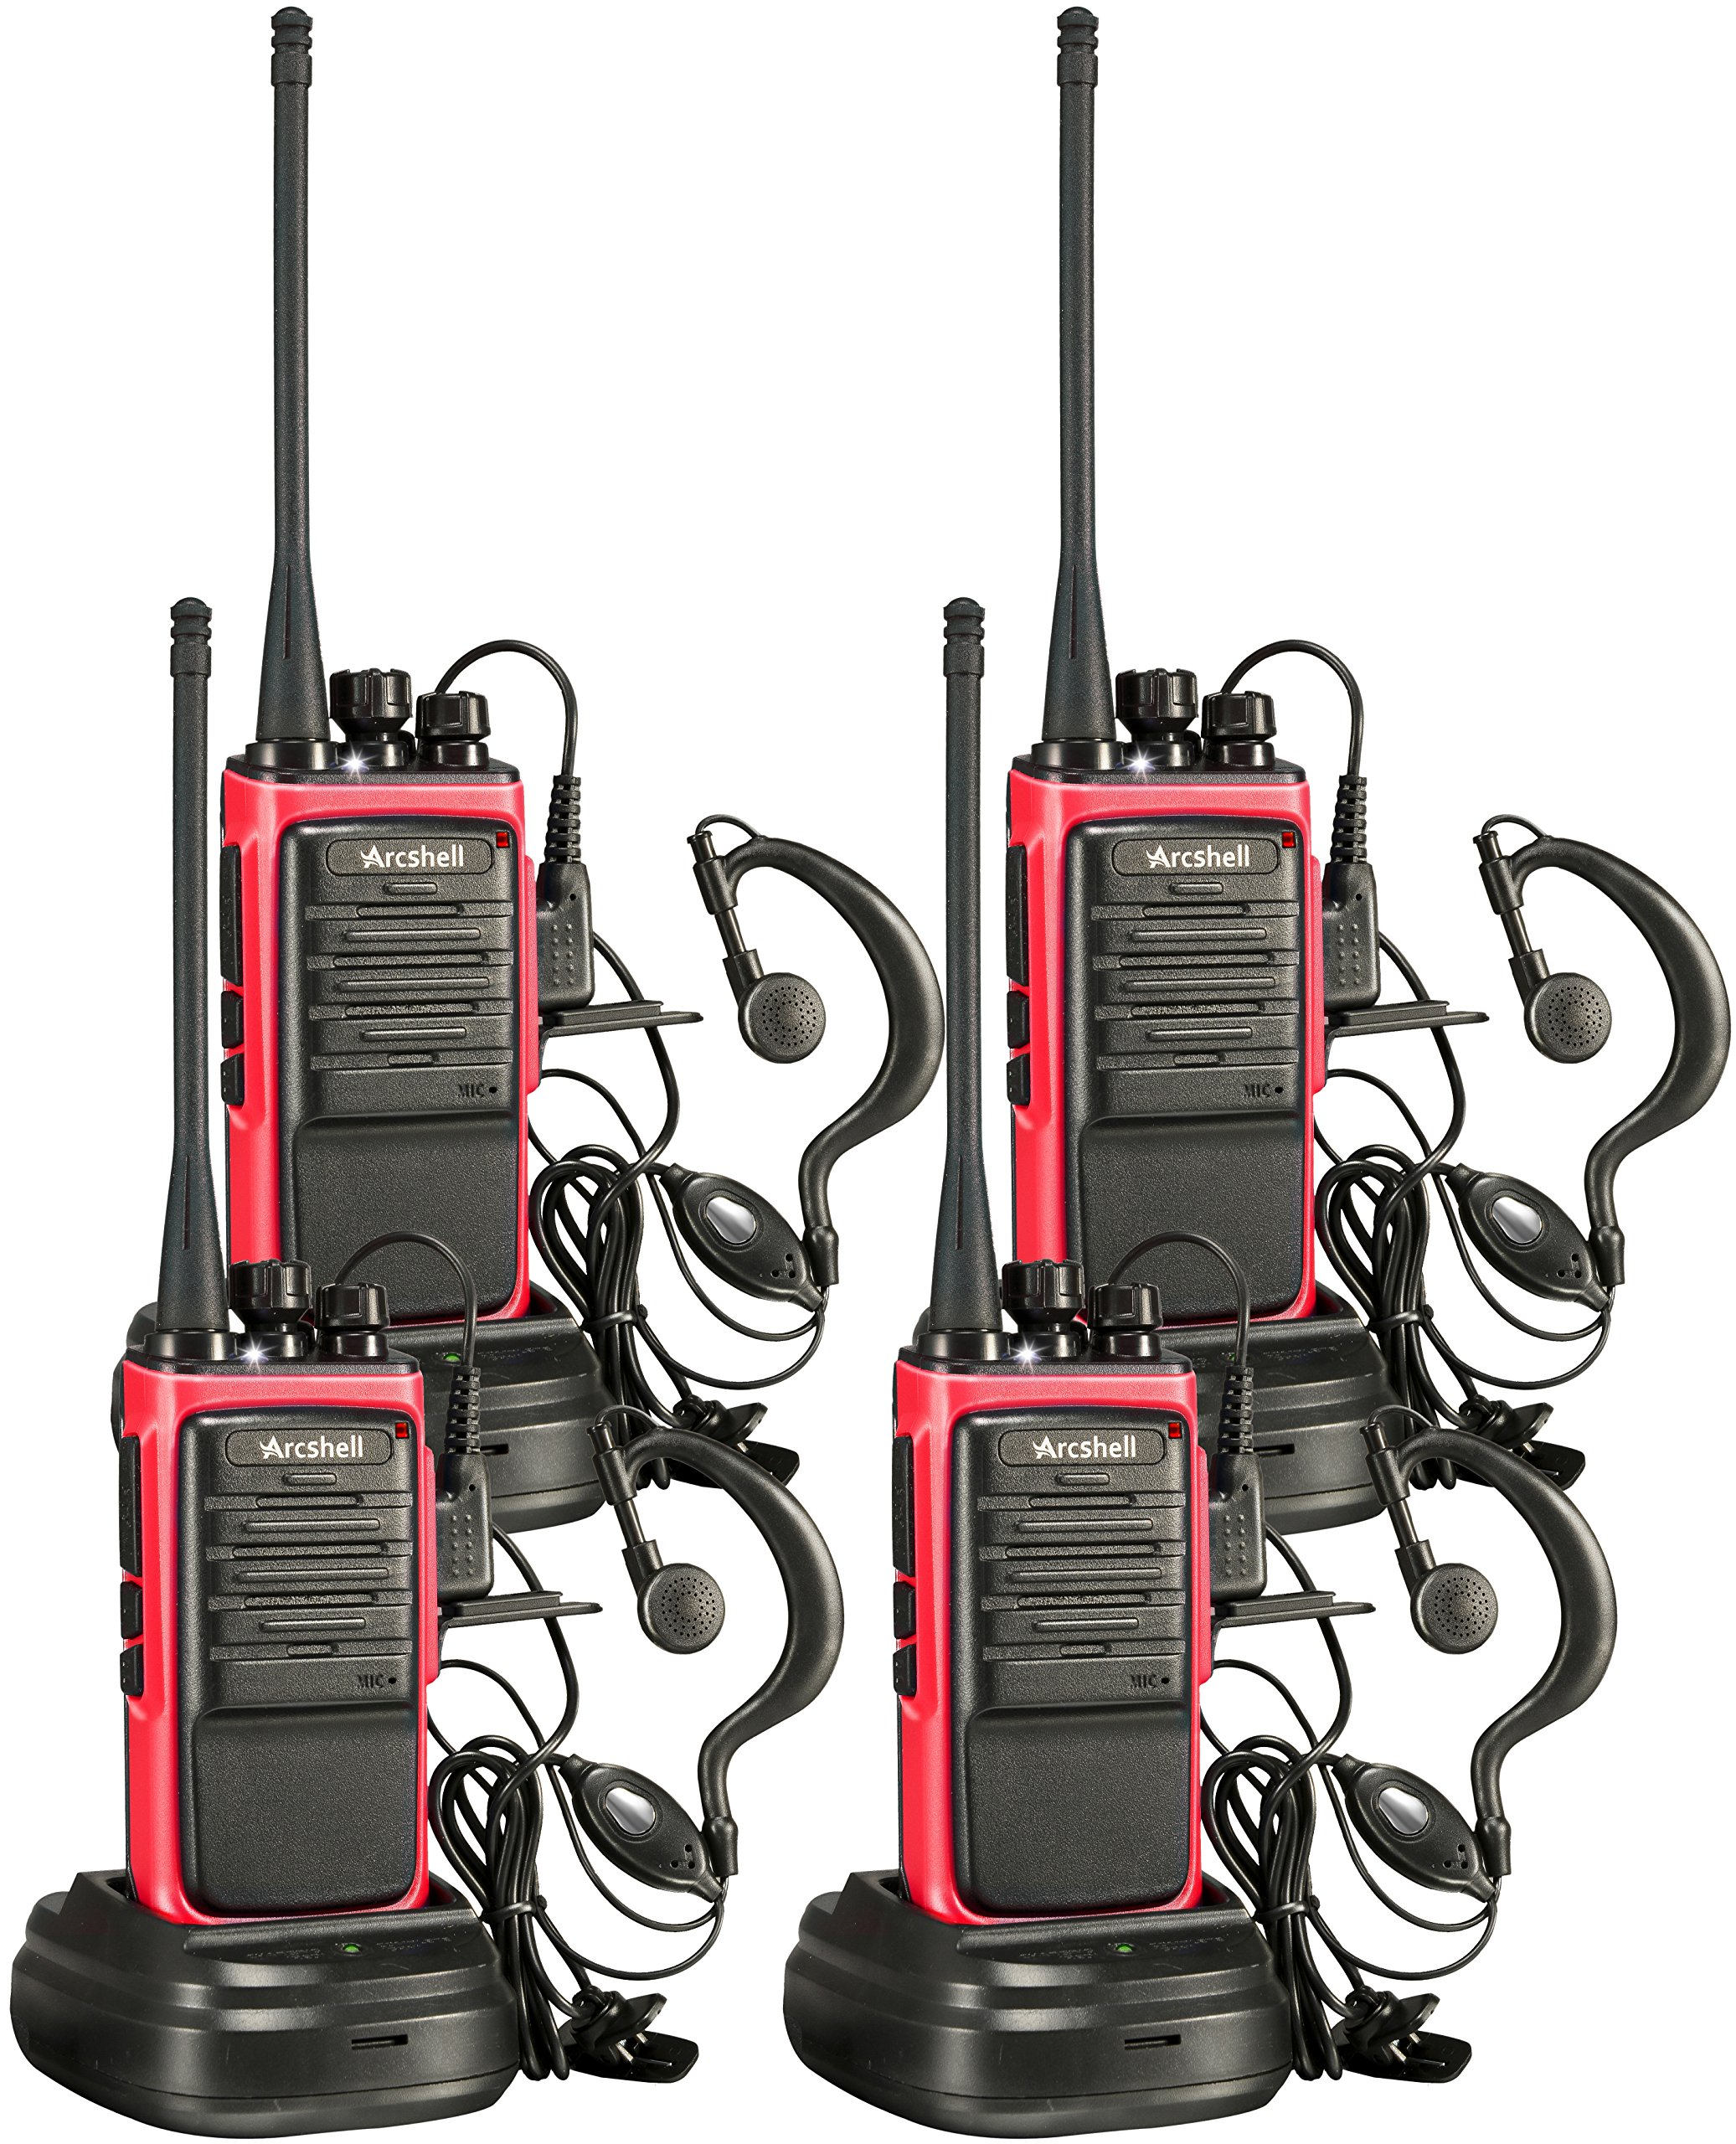 Arcshell Rechargeable Long Range Two-Way Radios with Earpiece 4 Pack Walkie Talkies UHF 400-470Mhz Li-ion Battery and Charger Included by Arcshell